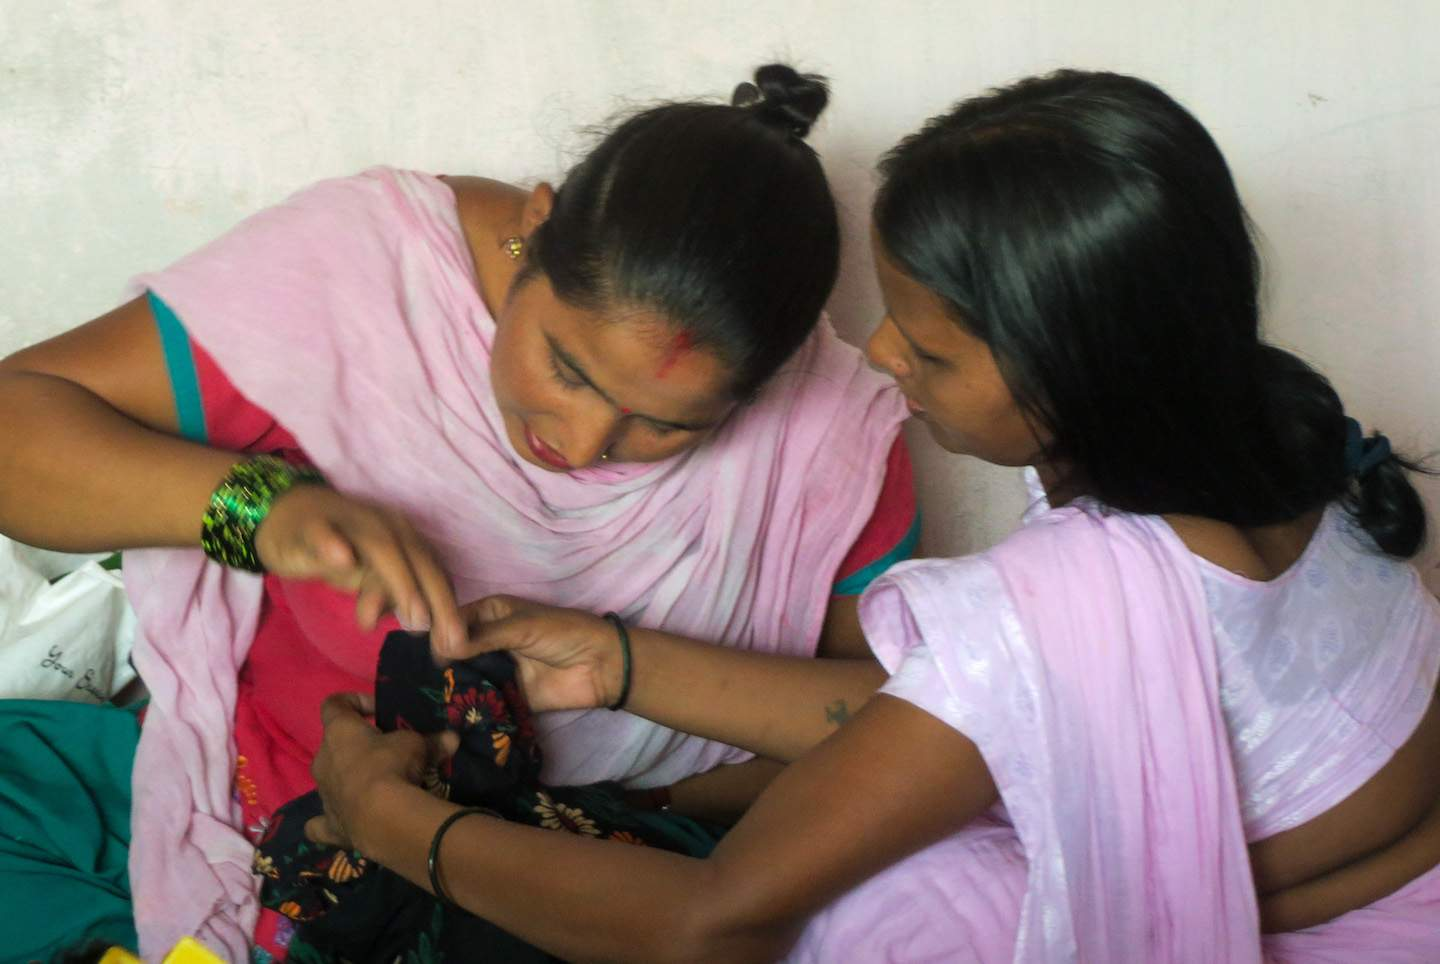 Through IGO evangelists, two women develop skills with a sewing machine, enabling them to escape from the discrimination single women face in India.